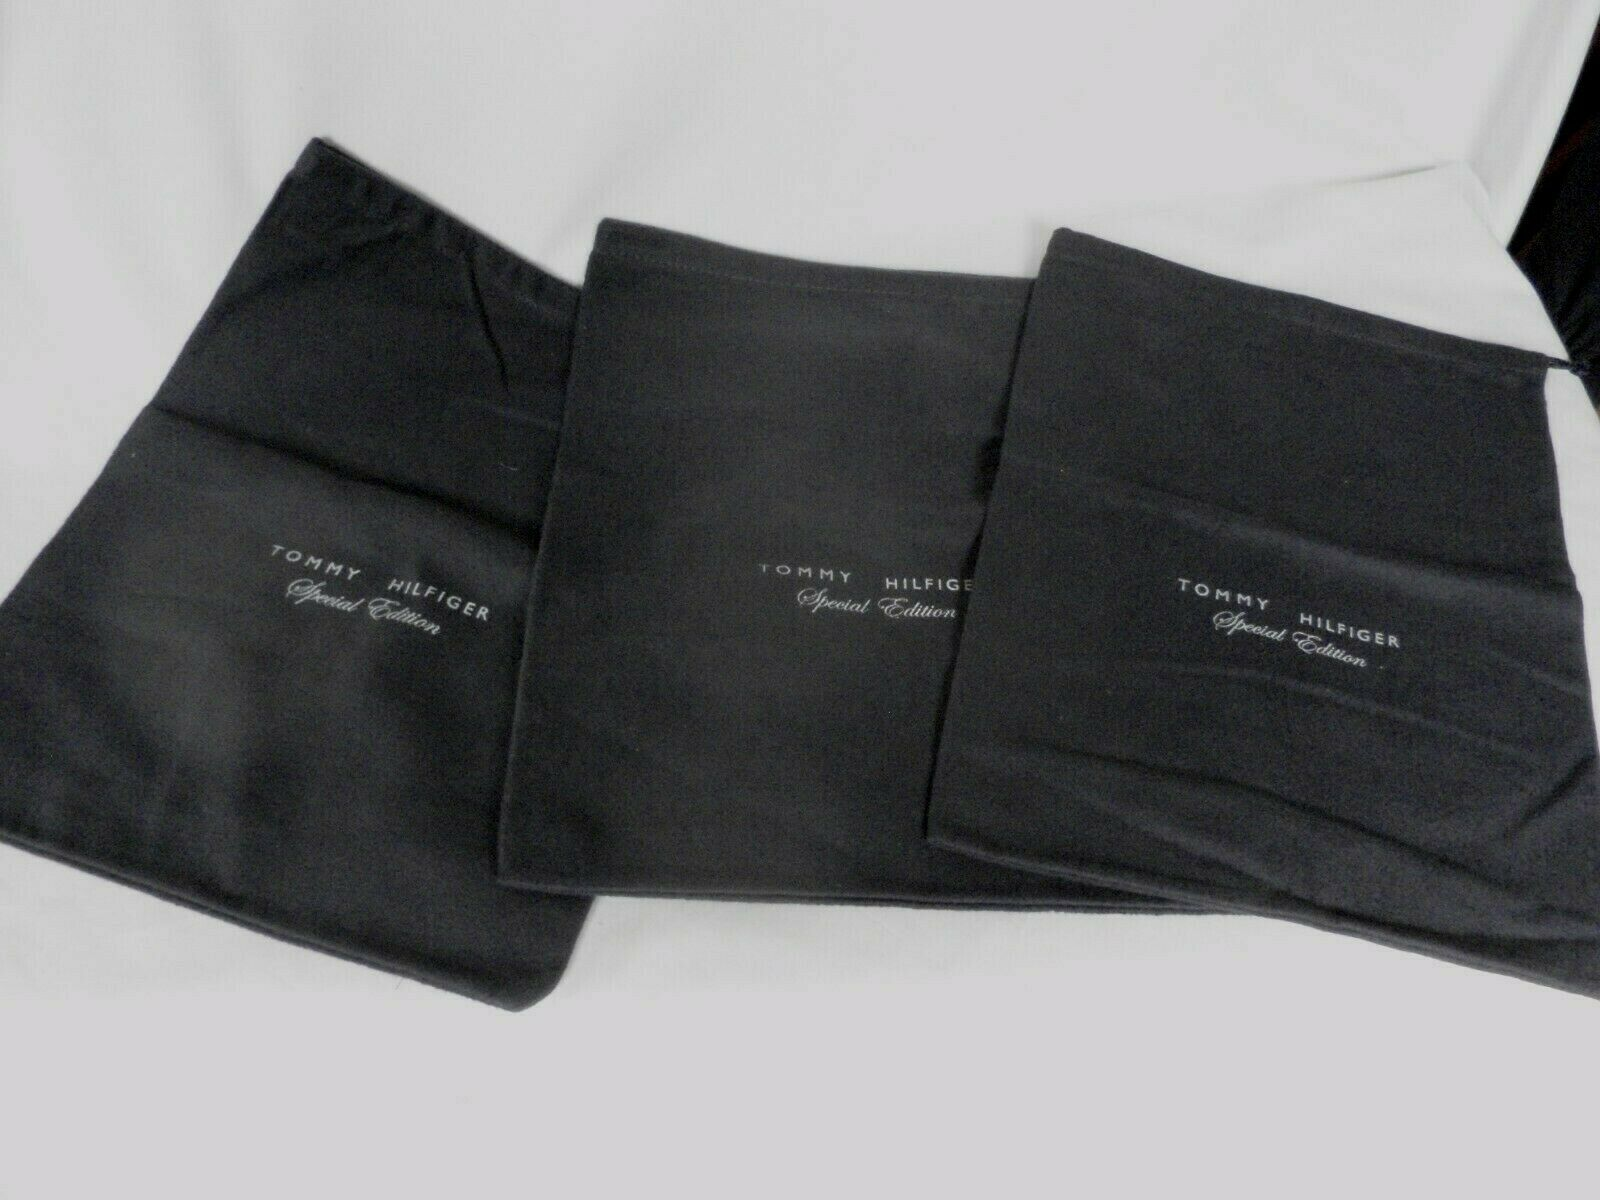 Tommy Hilfiger Blue Cotton Boots Size Dustbags Bags 1.5 pair Special Edition